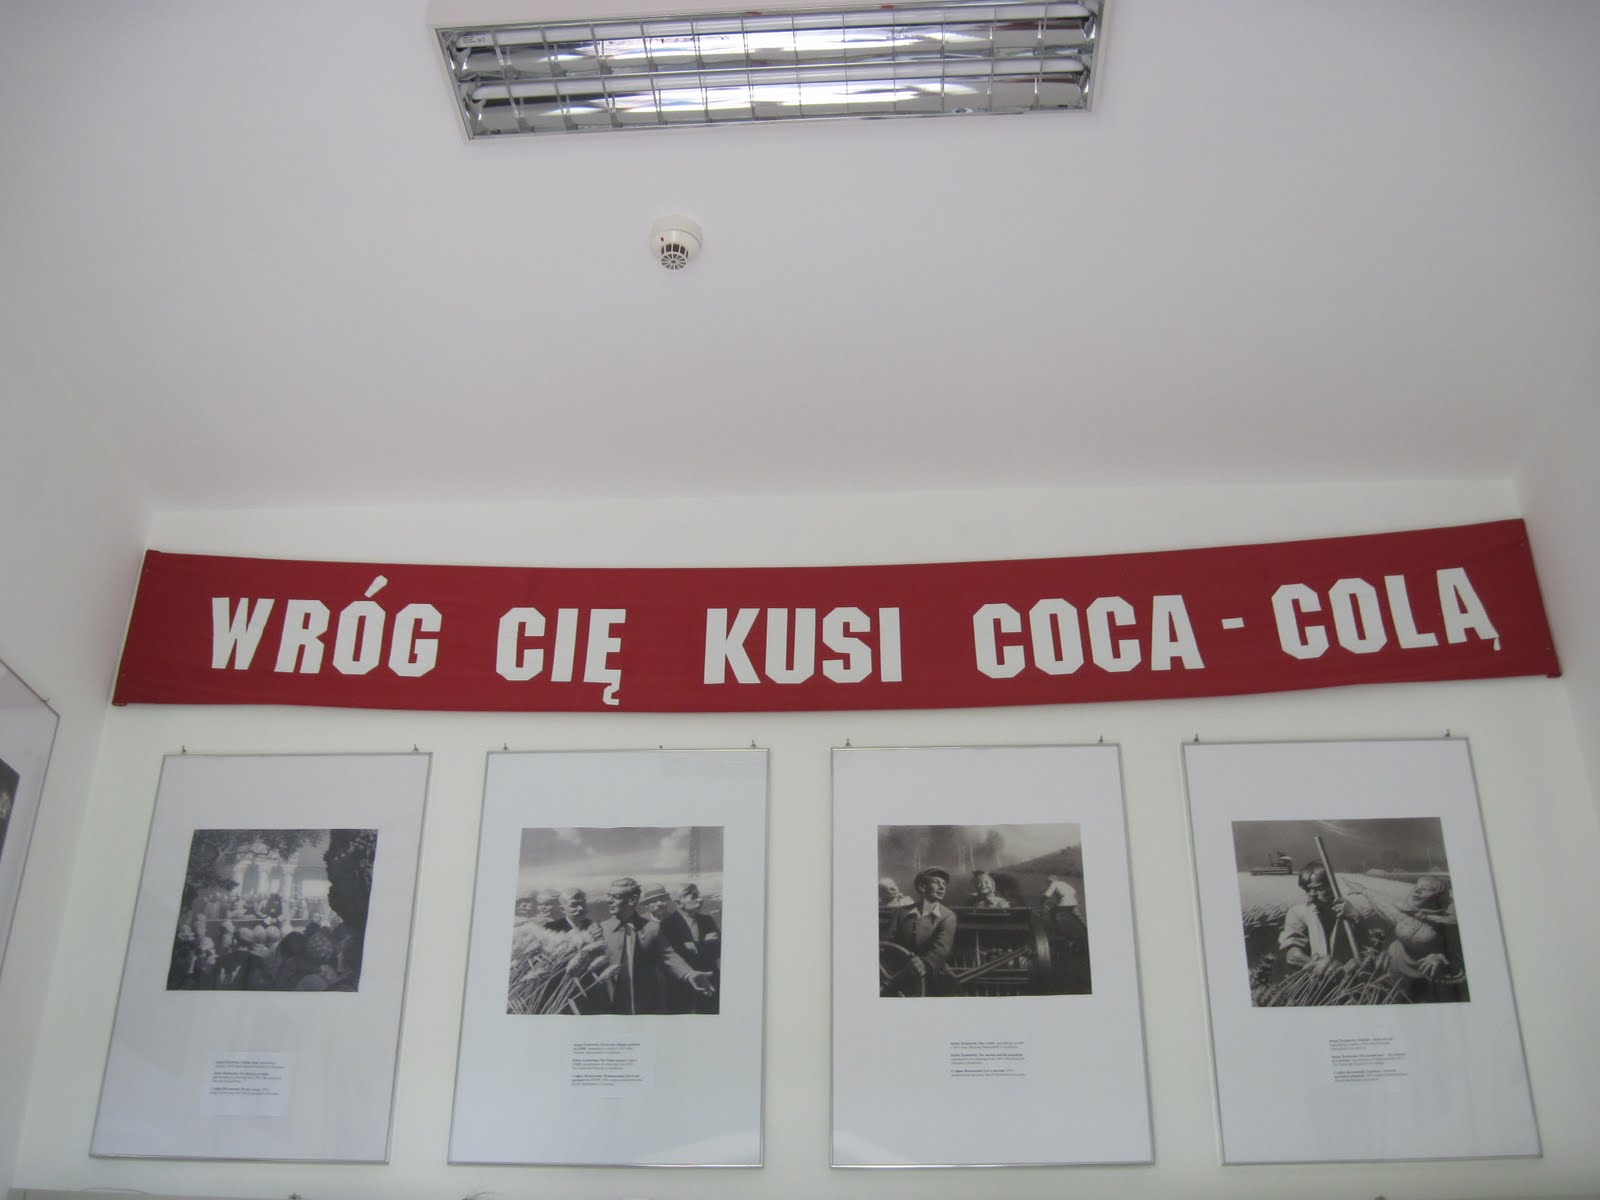 Our Polish Adventure: Museum of Socialrealism